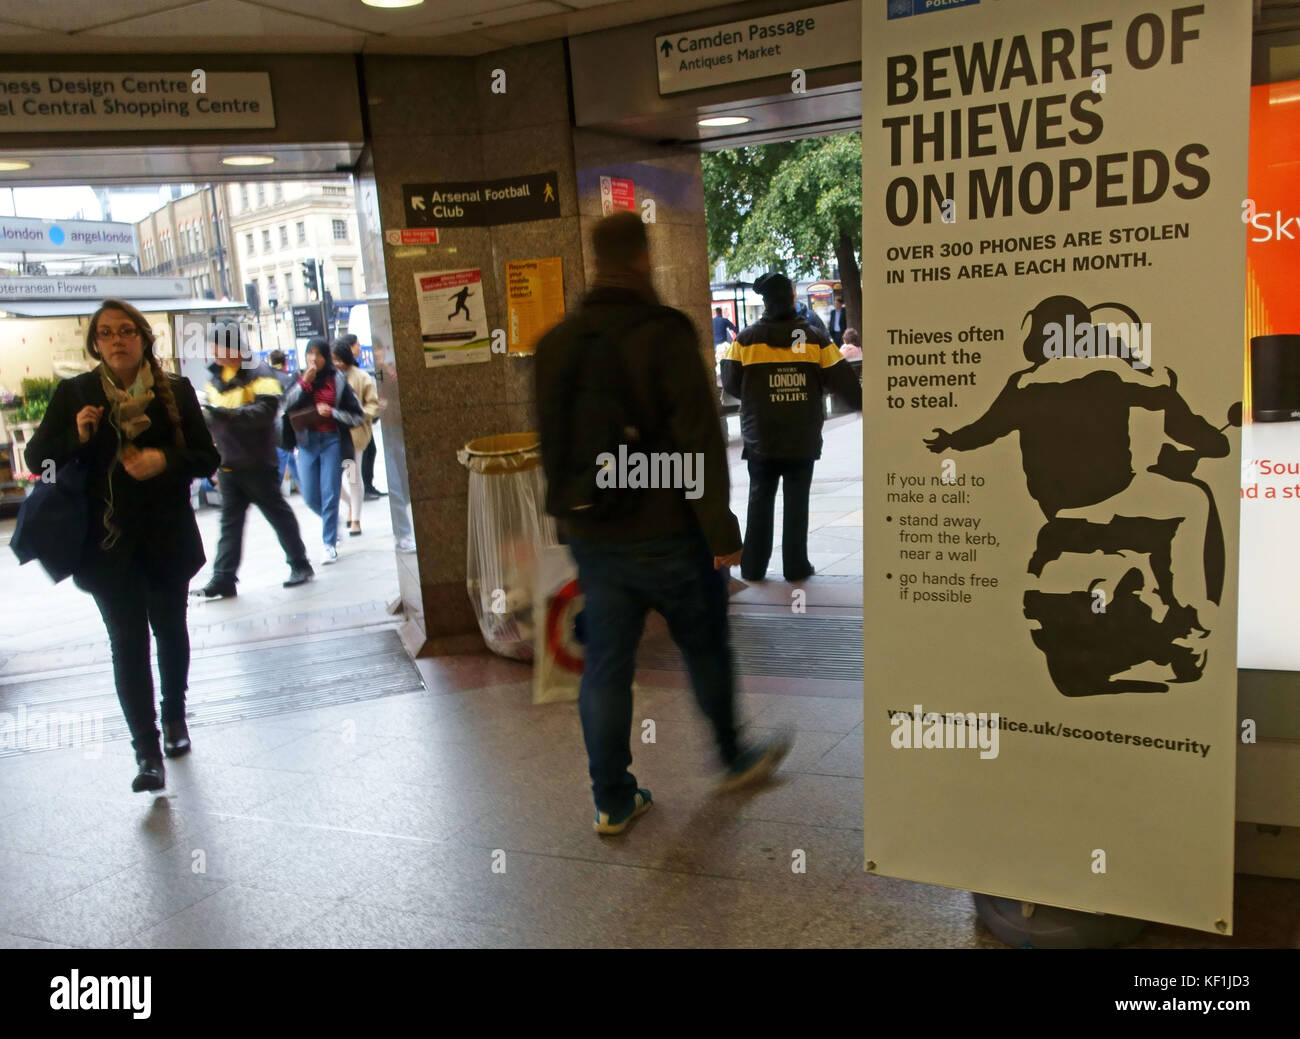 Police poster in Tube station warning about moped riding thieves, London - Stock Image